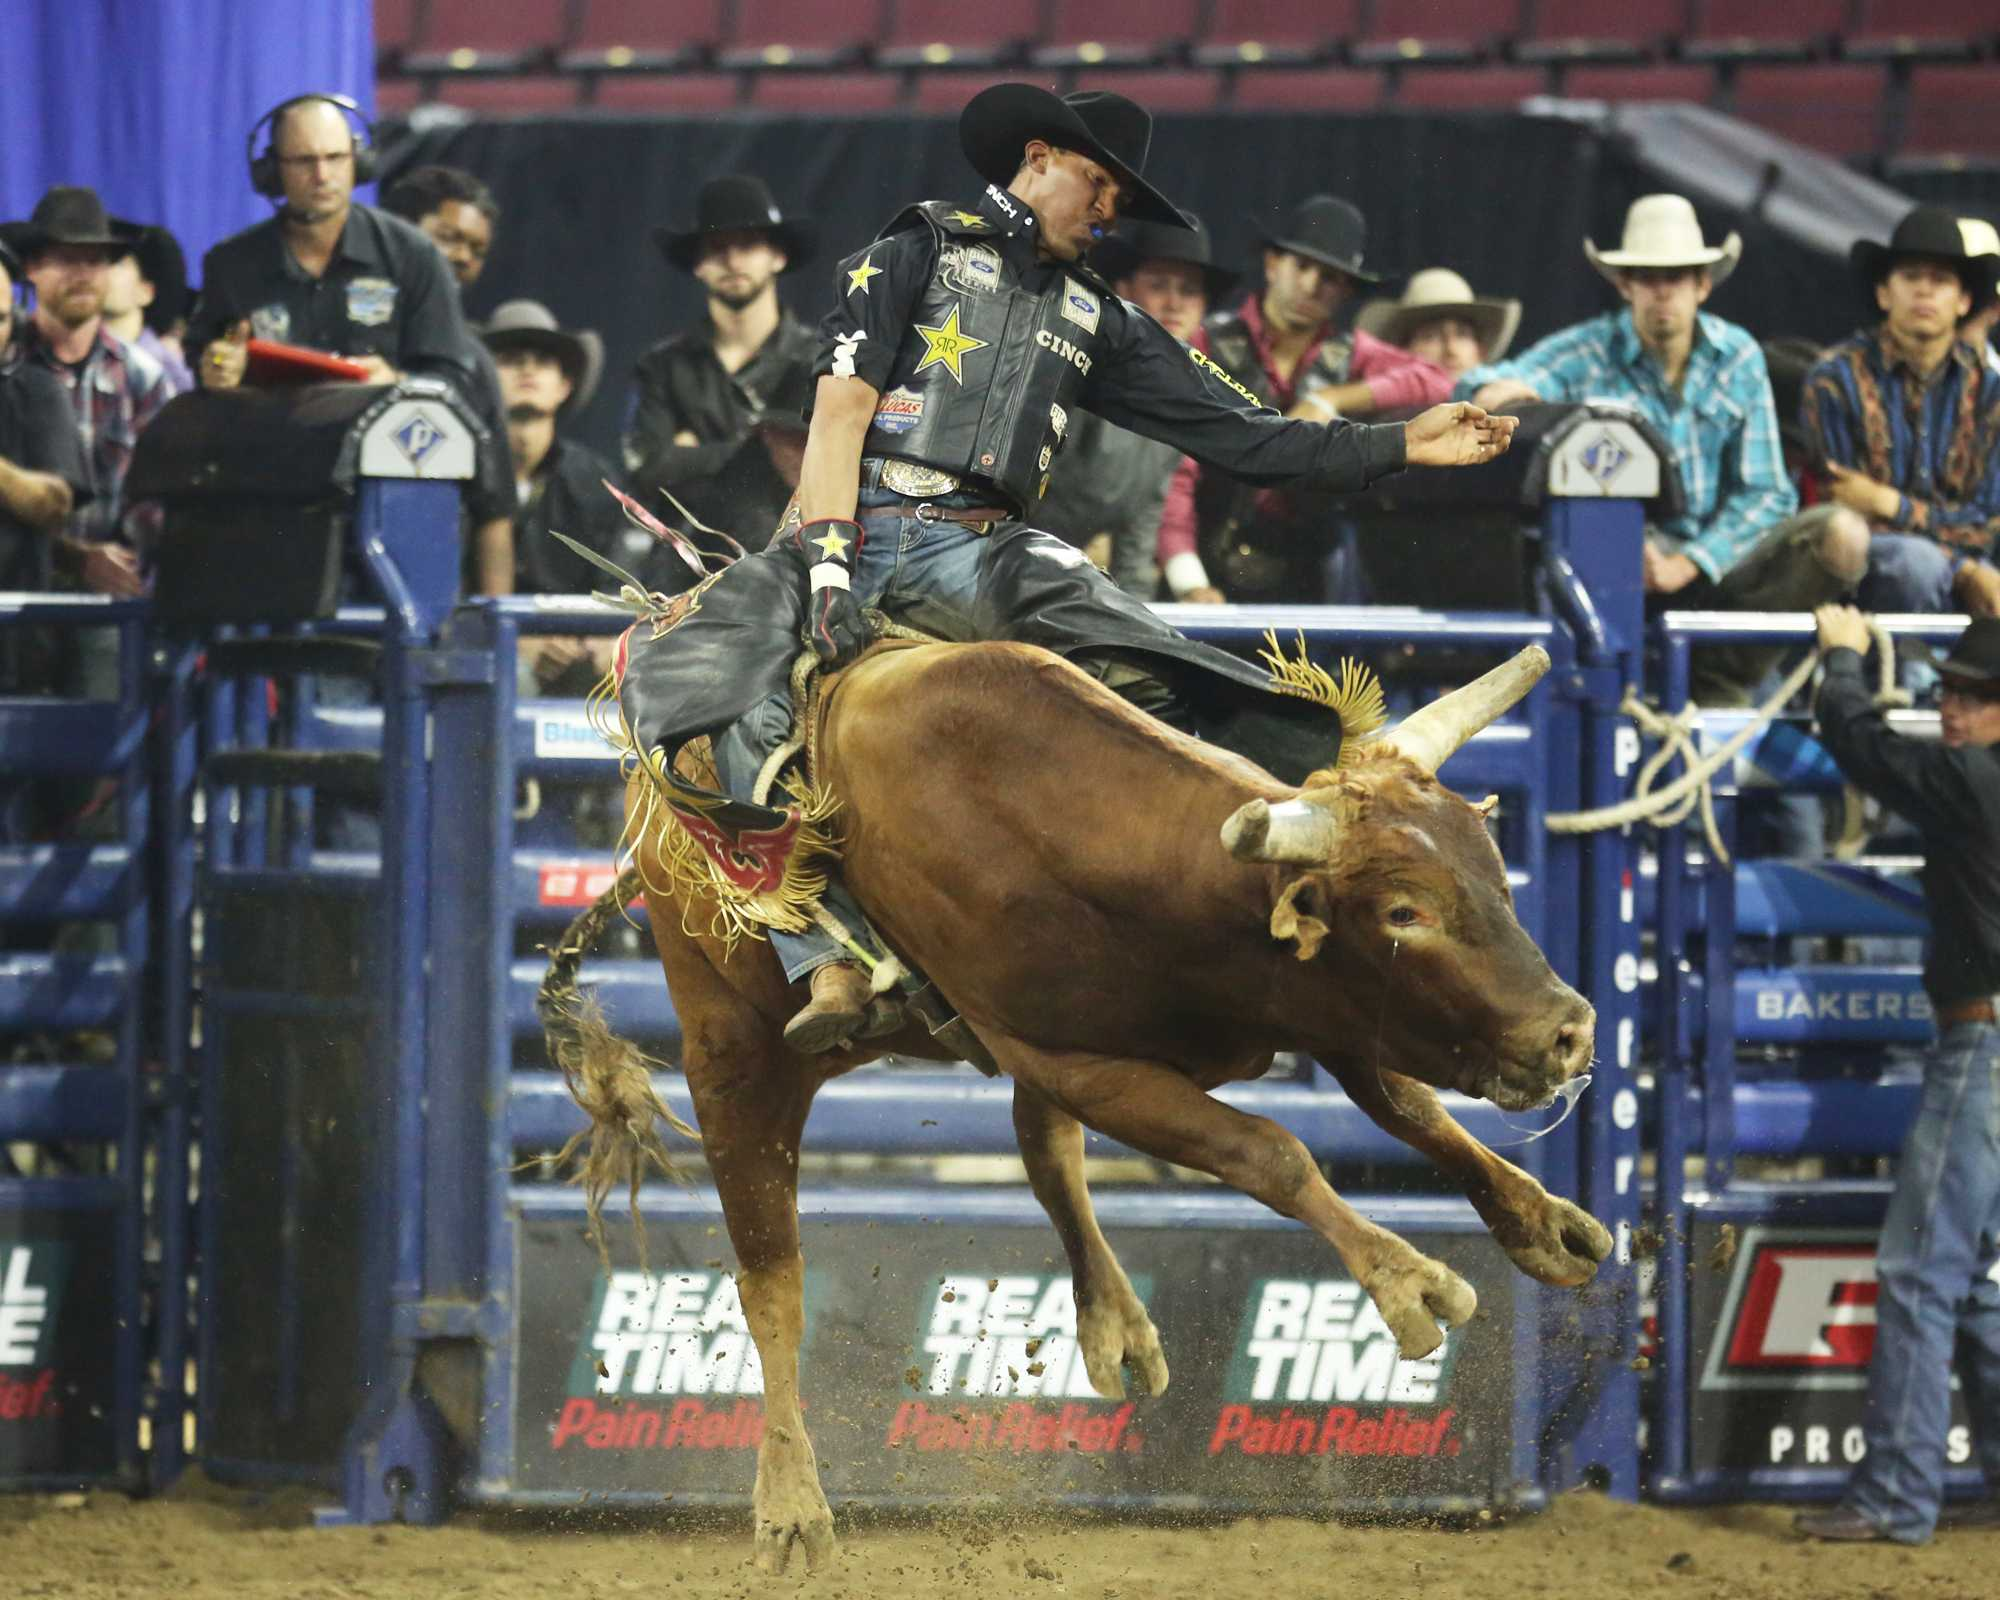 Valdiron de Oliveira holds on as Slingin It jumps and twists his body as he looks to throw the rider from his back.